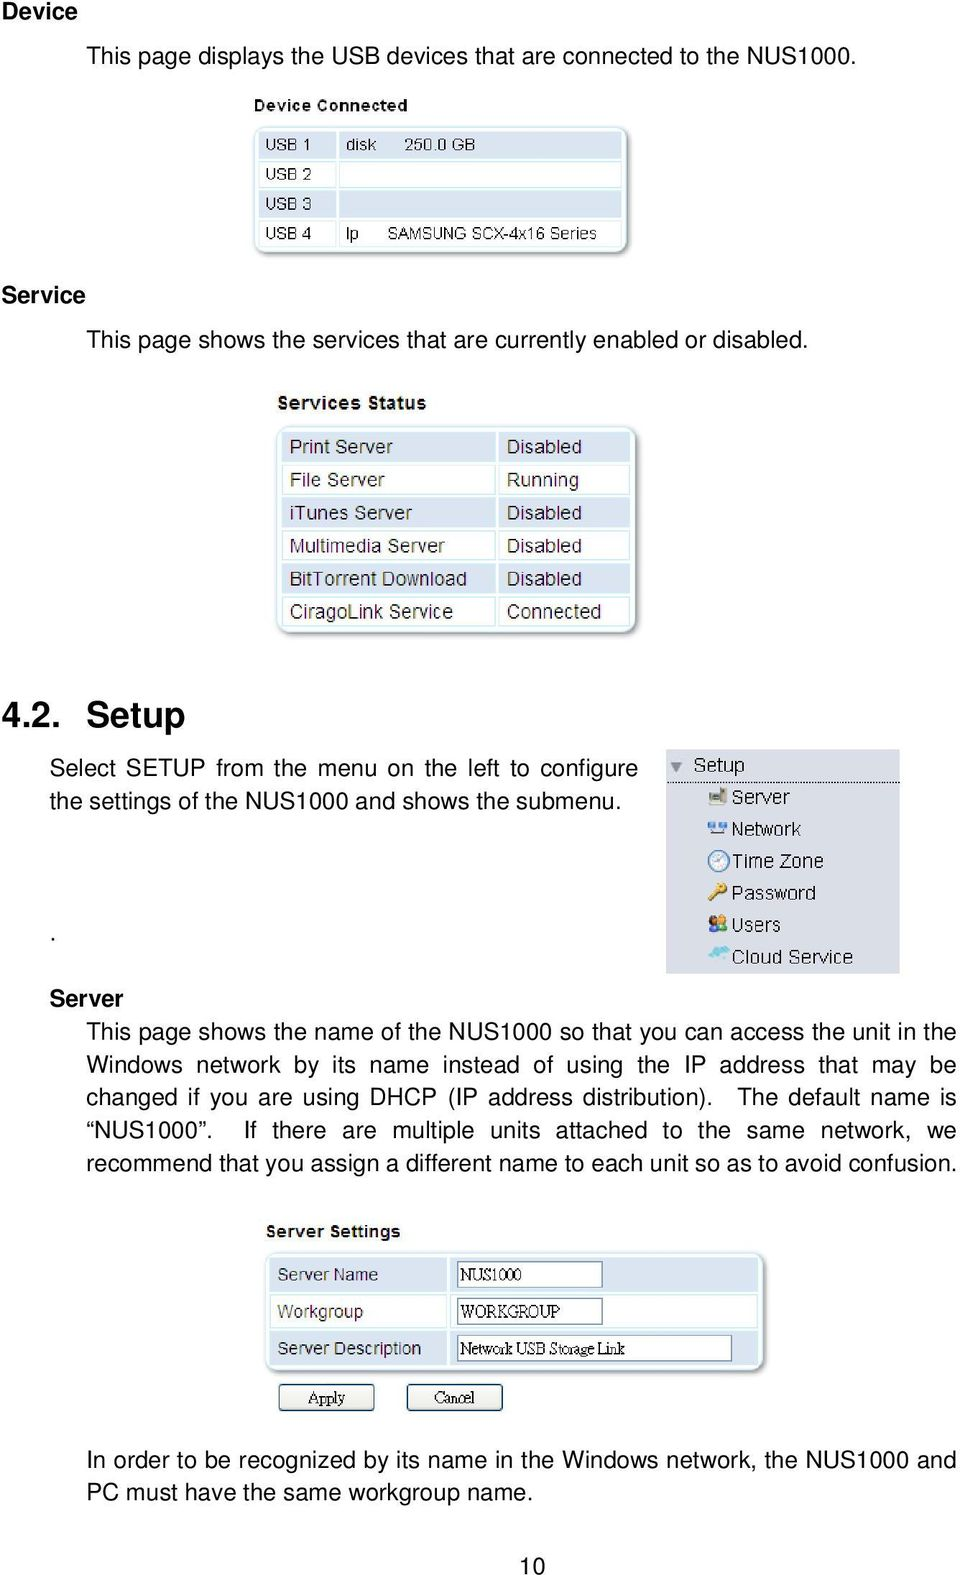 . Server This page shows the name of the NUS1000 so that you can access the unit in the Windows network by its name instead of using the IP address that may be changed if you are using DHCP (IP